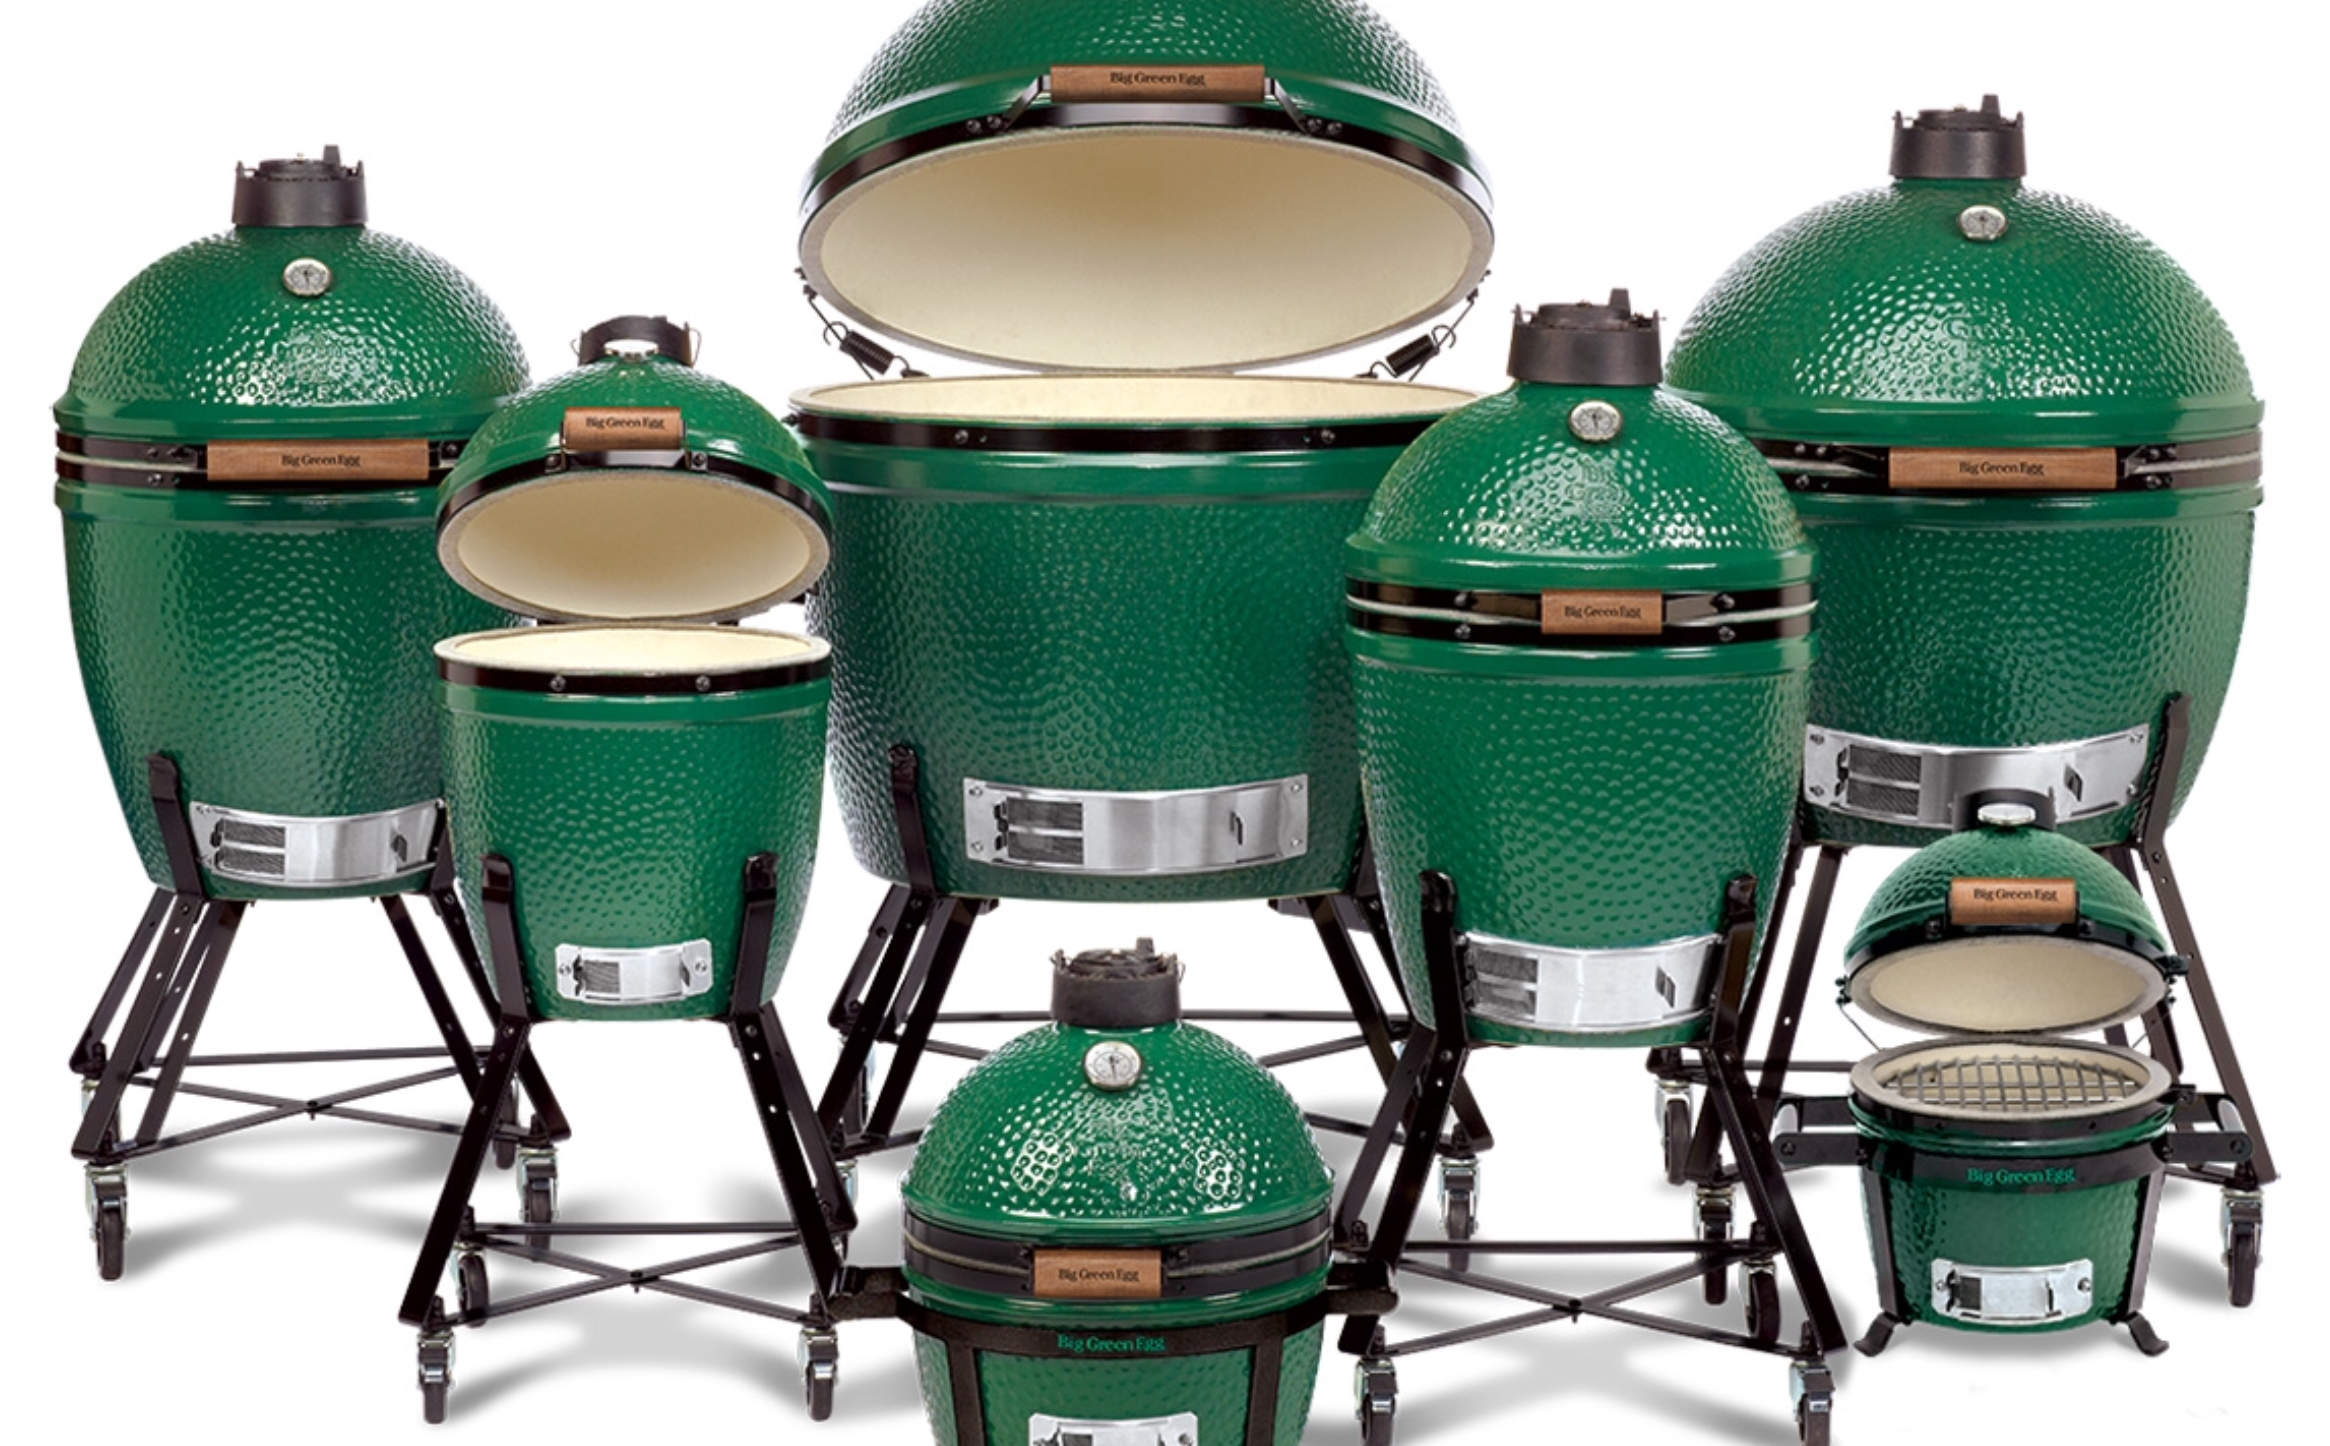 BigGreen Egg- Shop